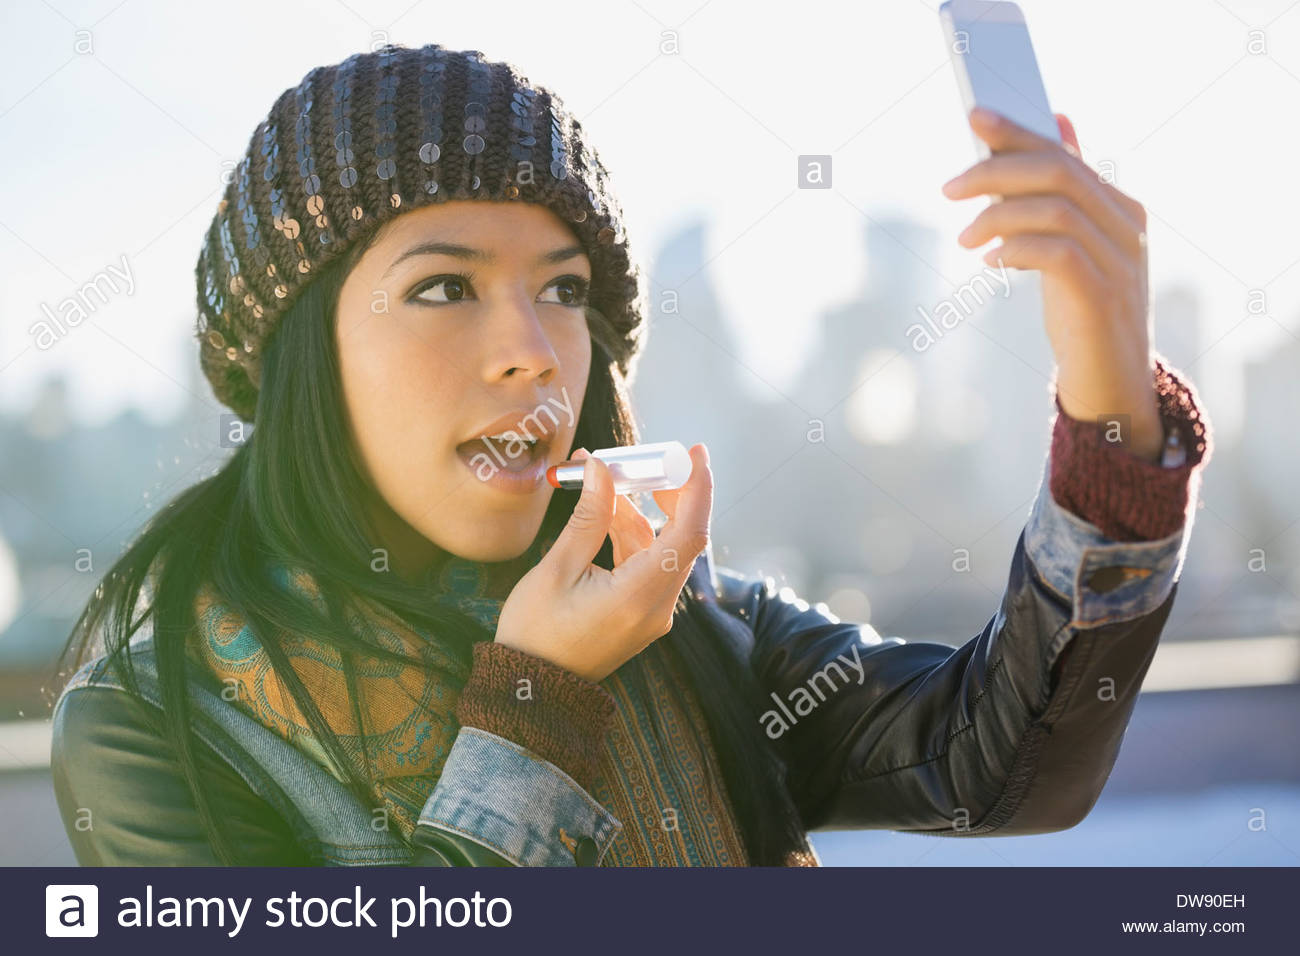 Woman using smart phone to apply lipstick outdoors - Stock Image